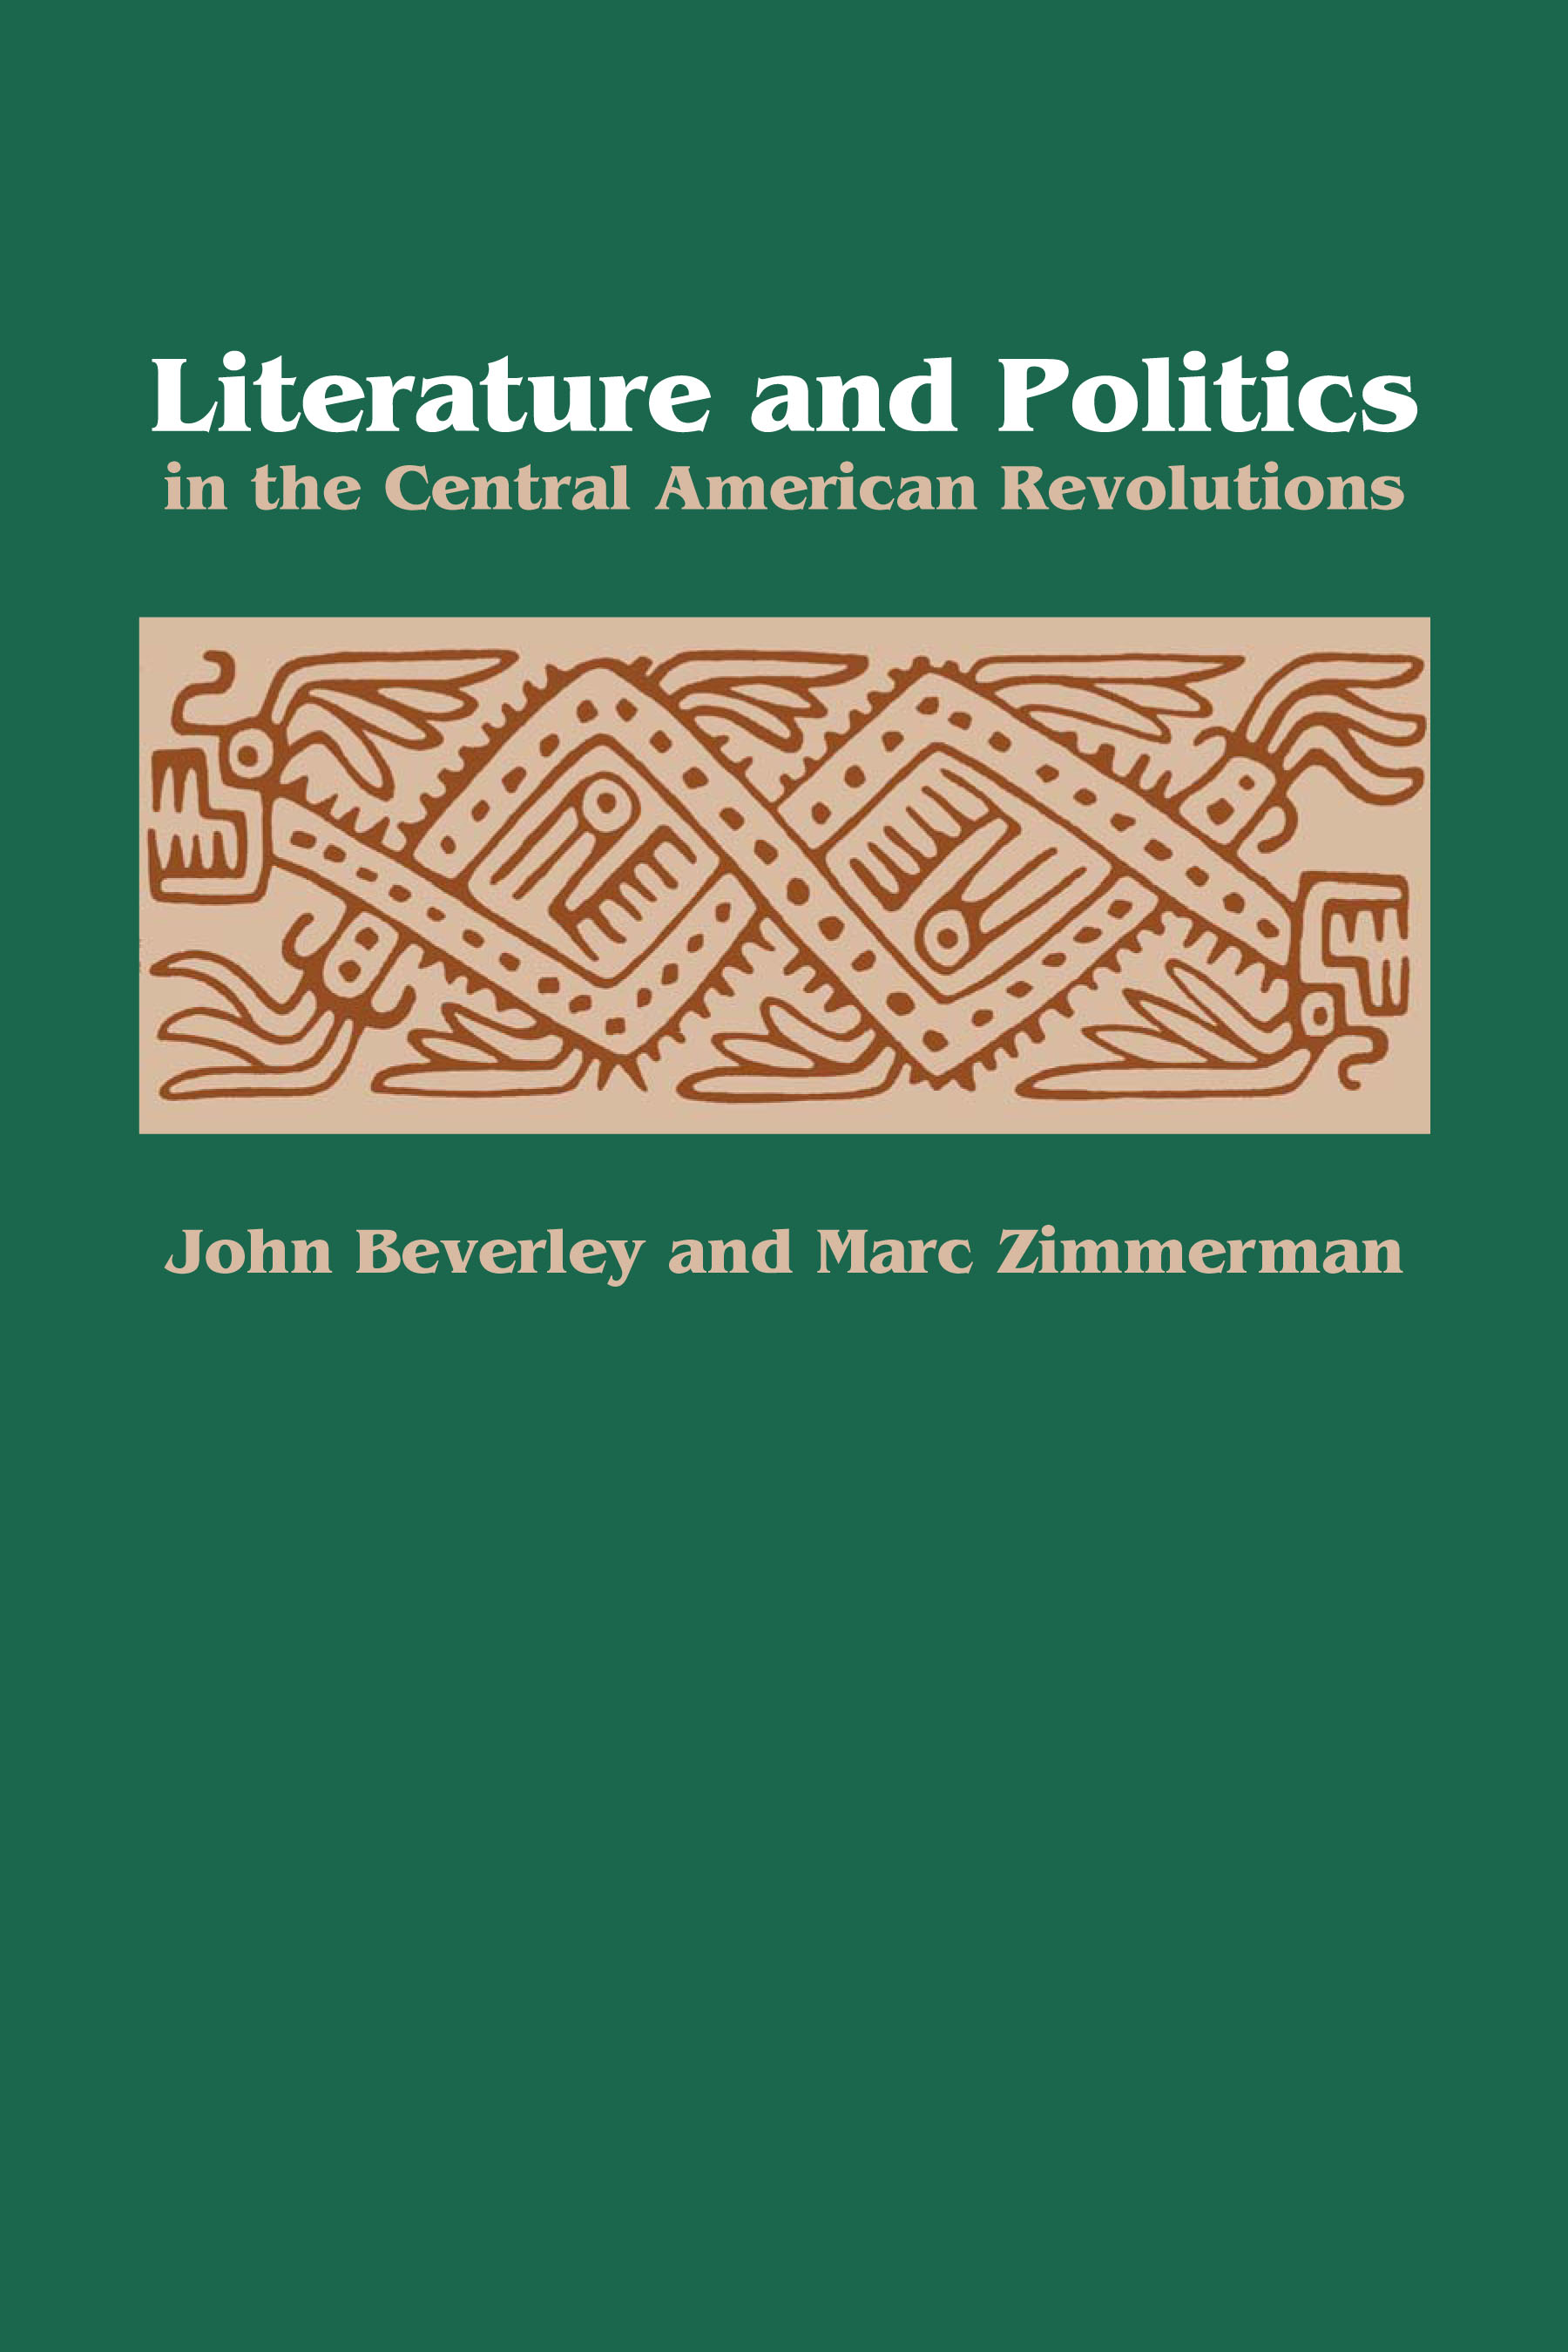 Cover of Literature and Politics in the Central American Revolutions